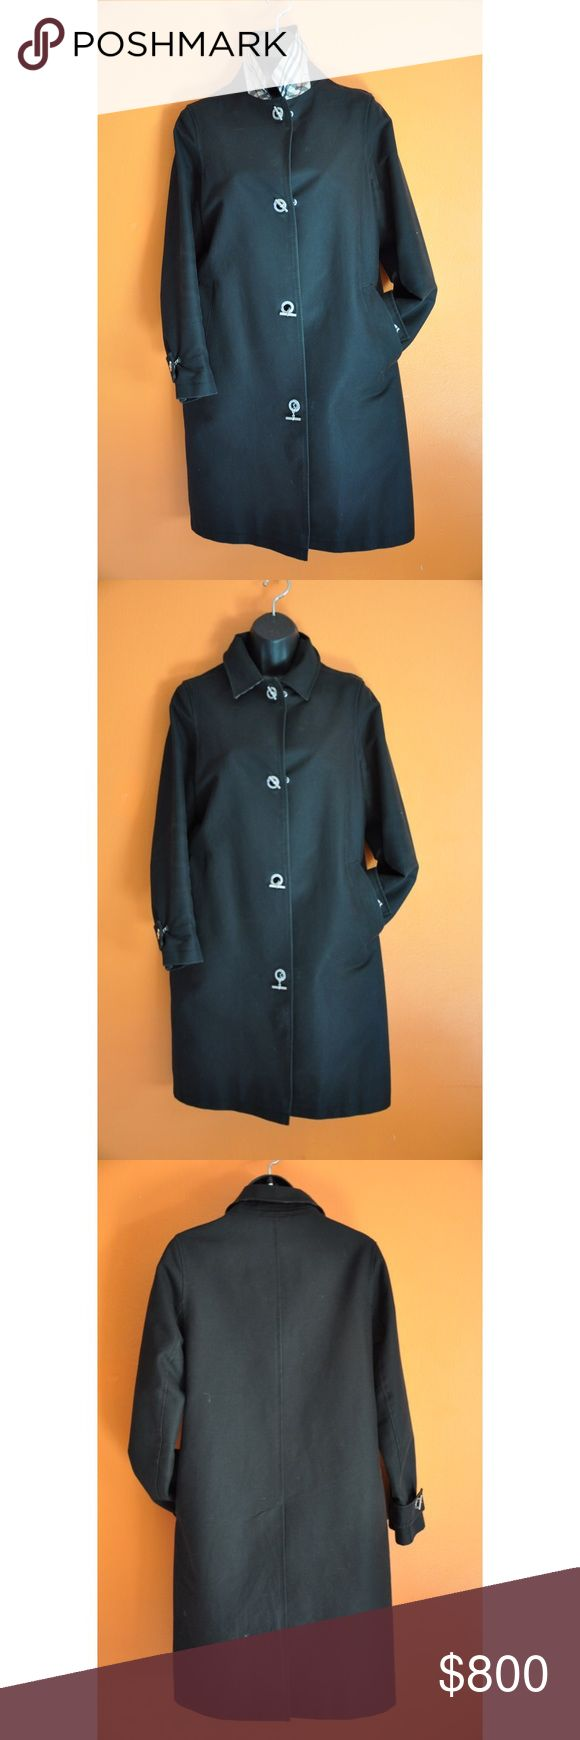 Trench coat Burberry trench coat. Preowned. In very good condition. Burberry Jackets & Coats Trench Coats